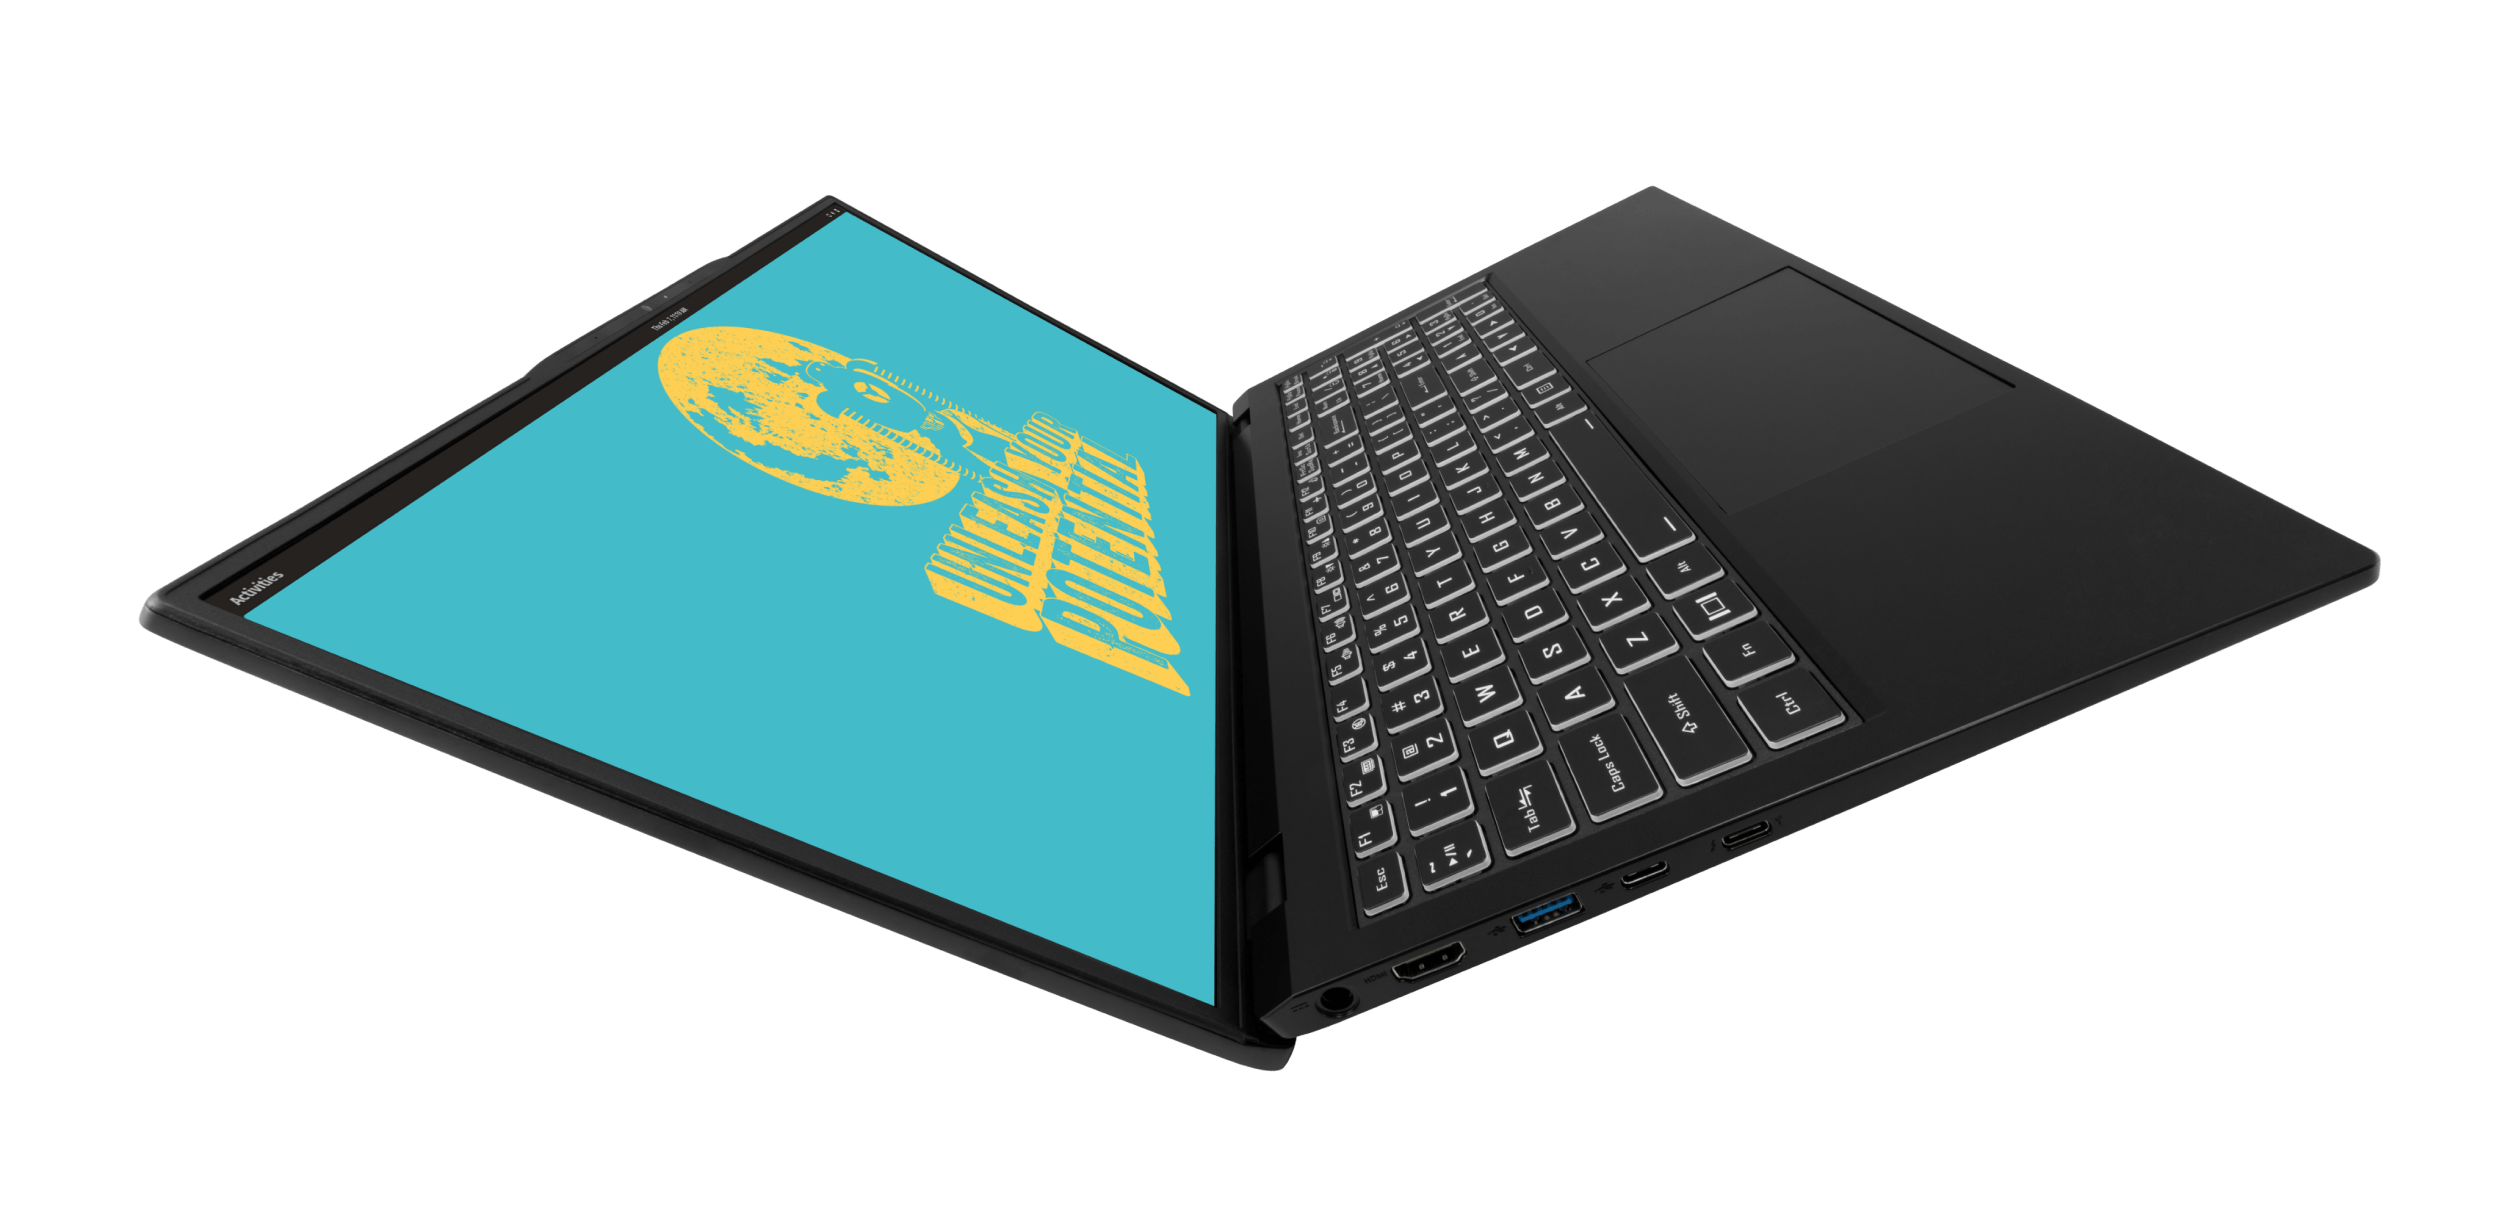 The Darter Pro laptop opened to a V-shape, showing off its sleek chassis design.